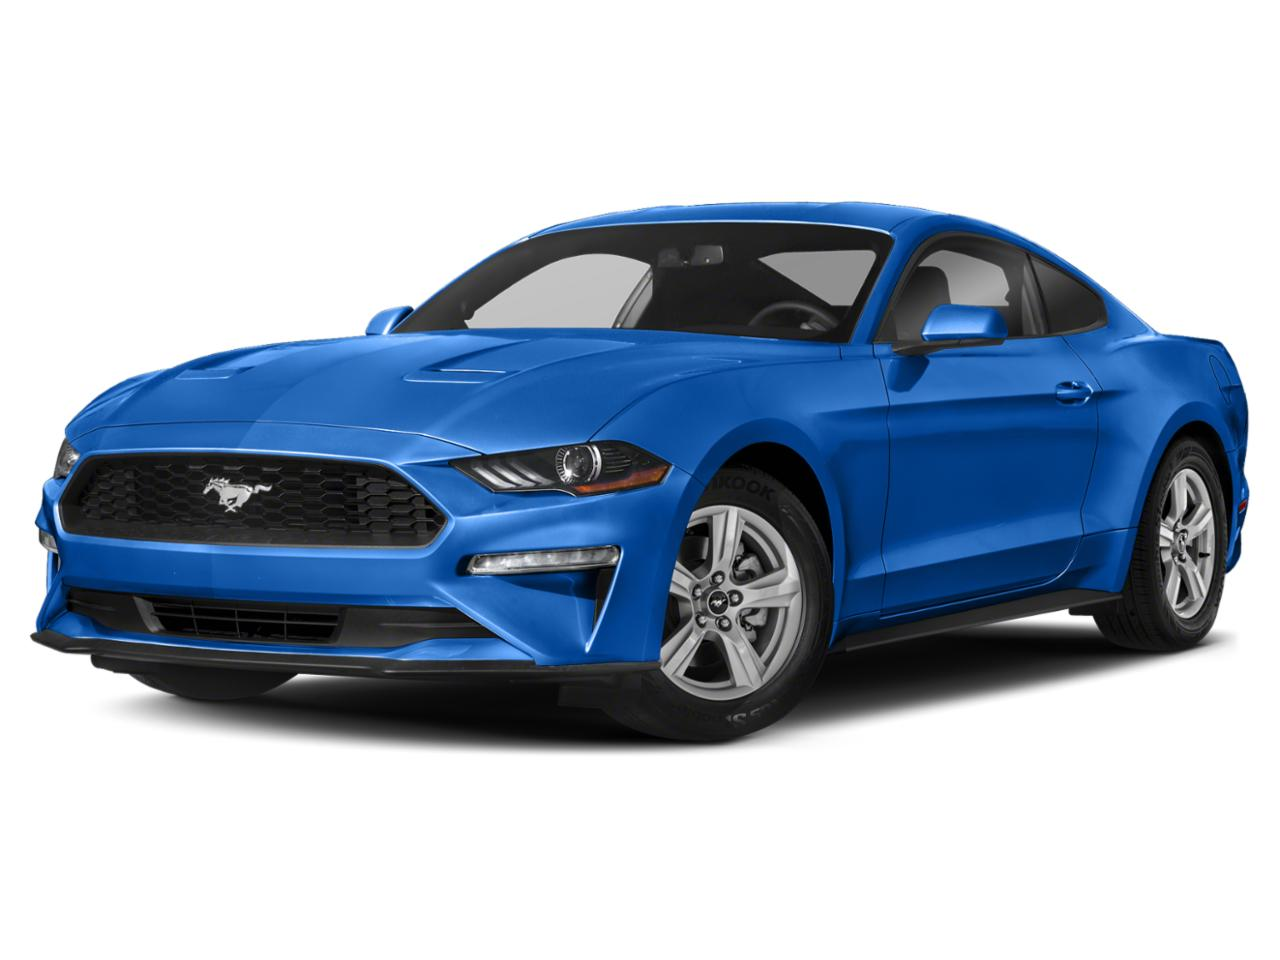 2020 Ford Mustang Vehicle Photo in TUCSON, AZ 85705-6014